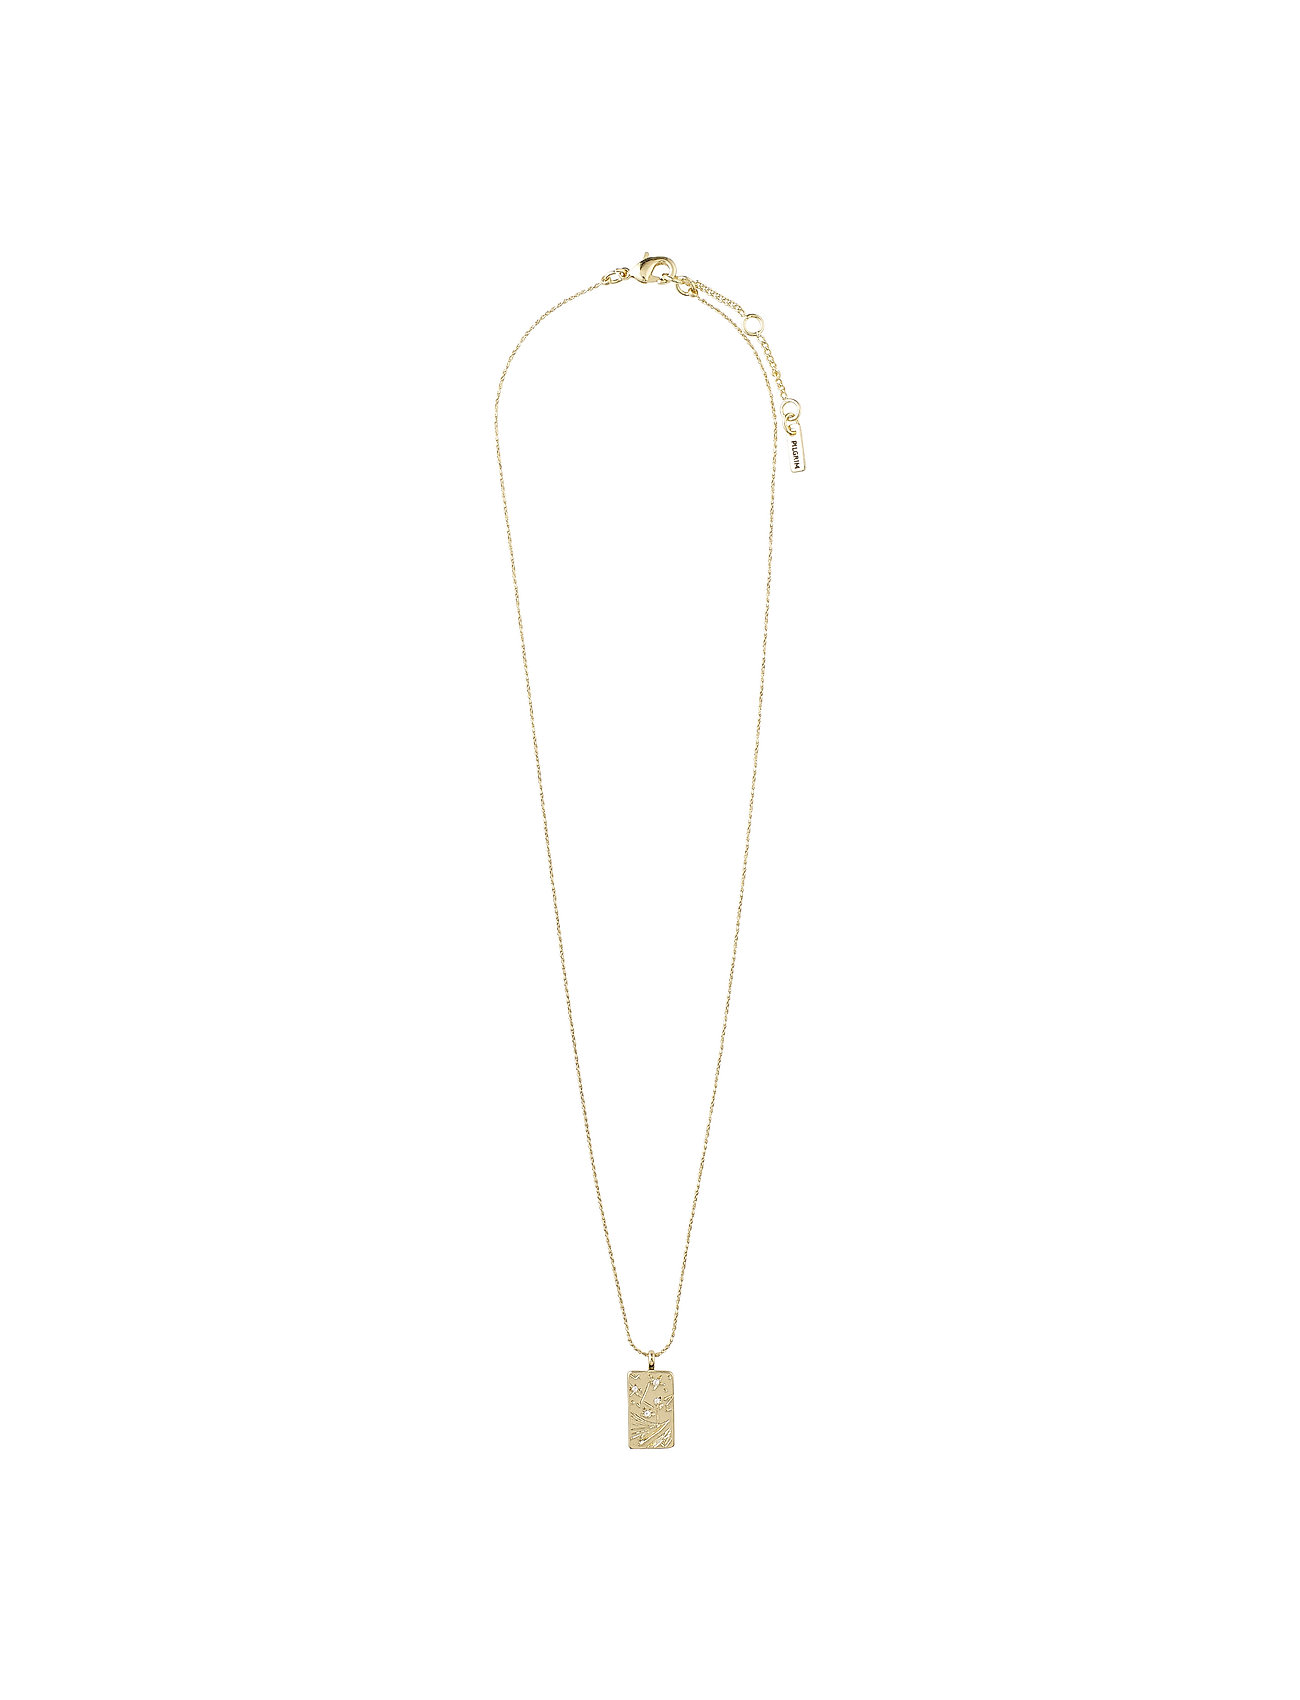 Necklace Gracefulness Crystal (Gold Plated) (34.95 €) - Pilgrim cFHs7